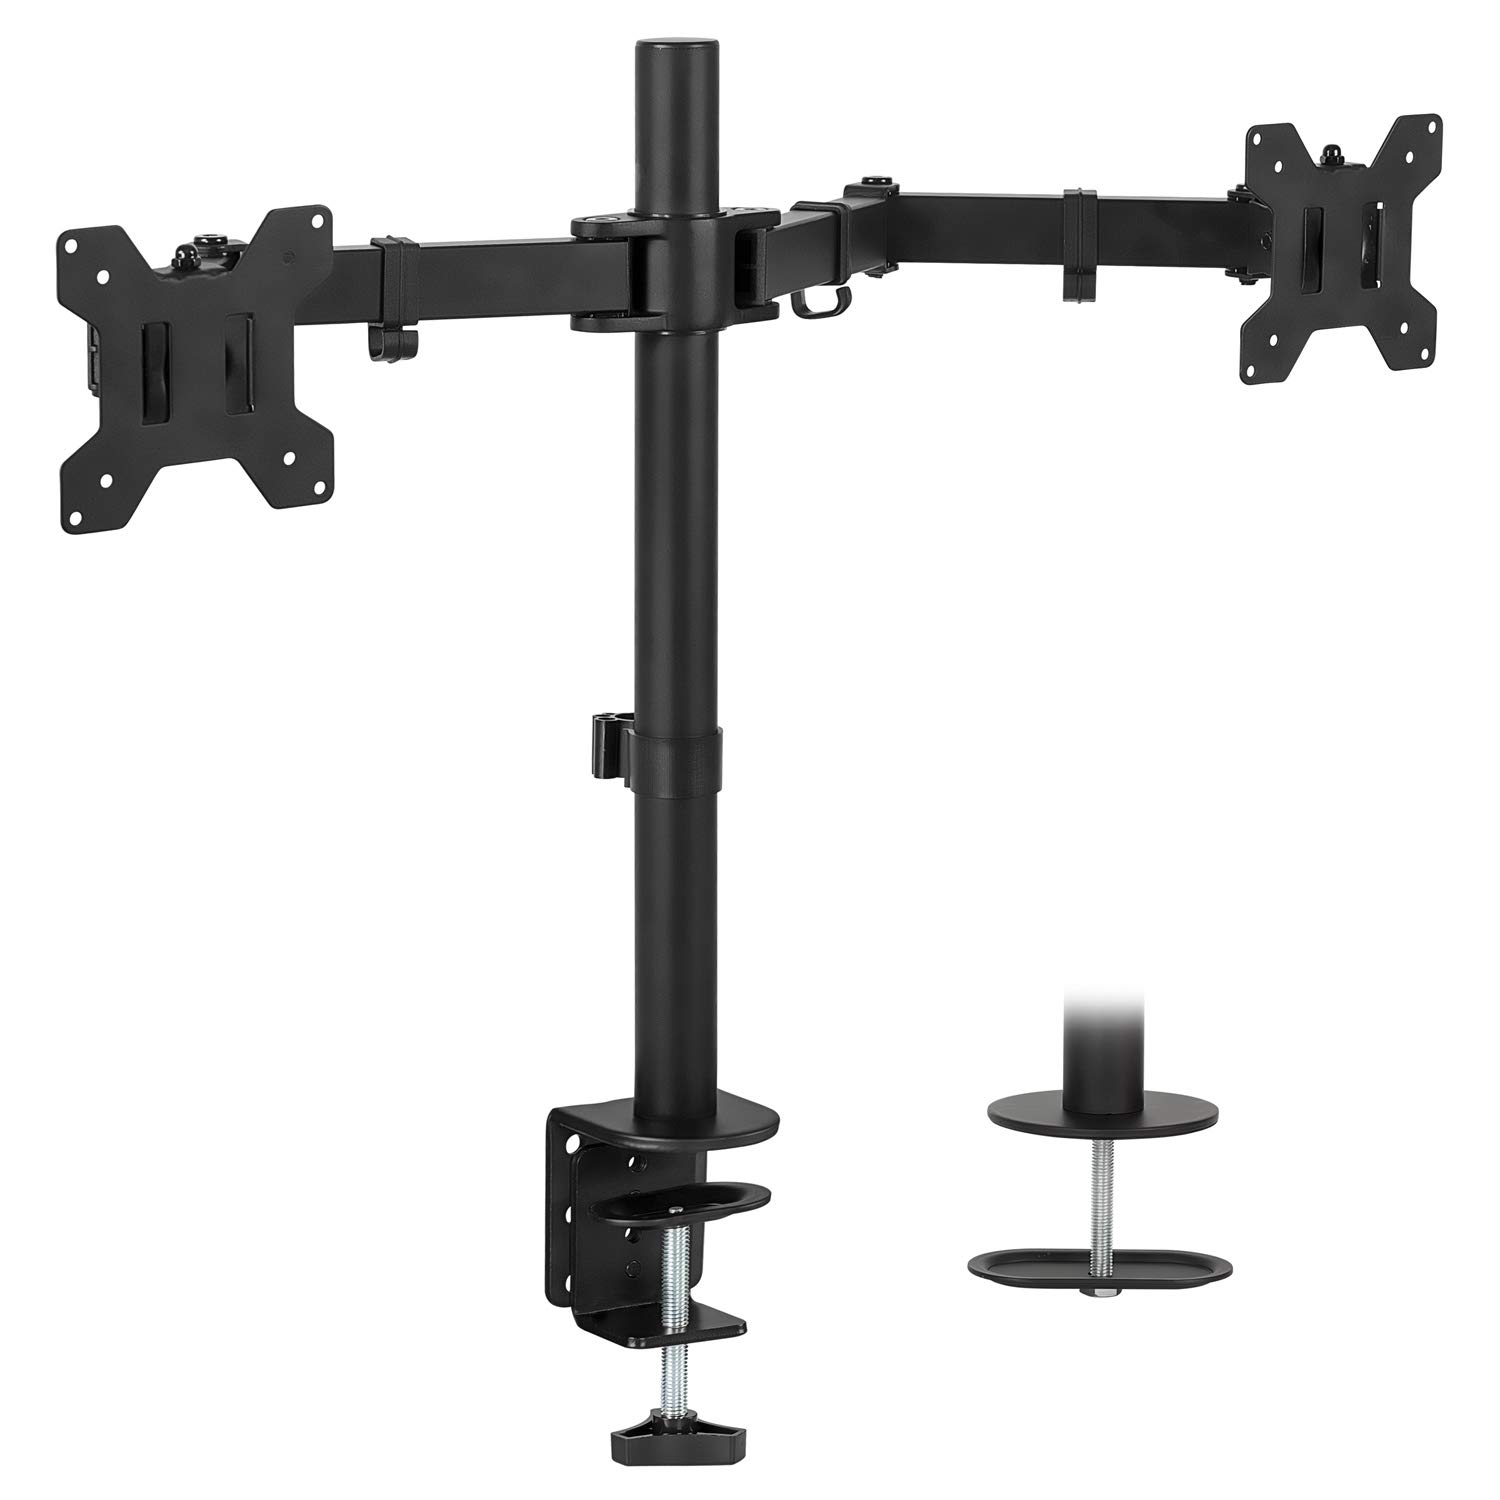 Mount-It! Dual Monitor Mount | Double Monitor Desk Stand | Two Heavy Duty Full Motion Adjustable Arms Fit 2 Computer Screens 17 19 20 21 22 24 27 Inch | VESA 75 100 | C-Clamp and Grommet Base by Mount-It!